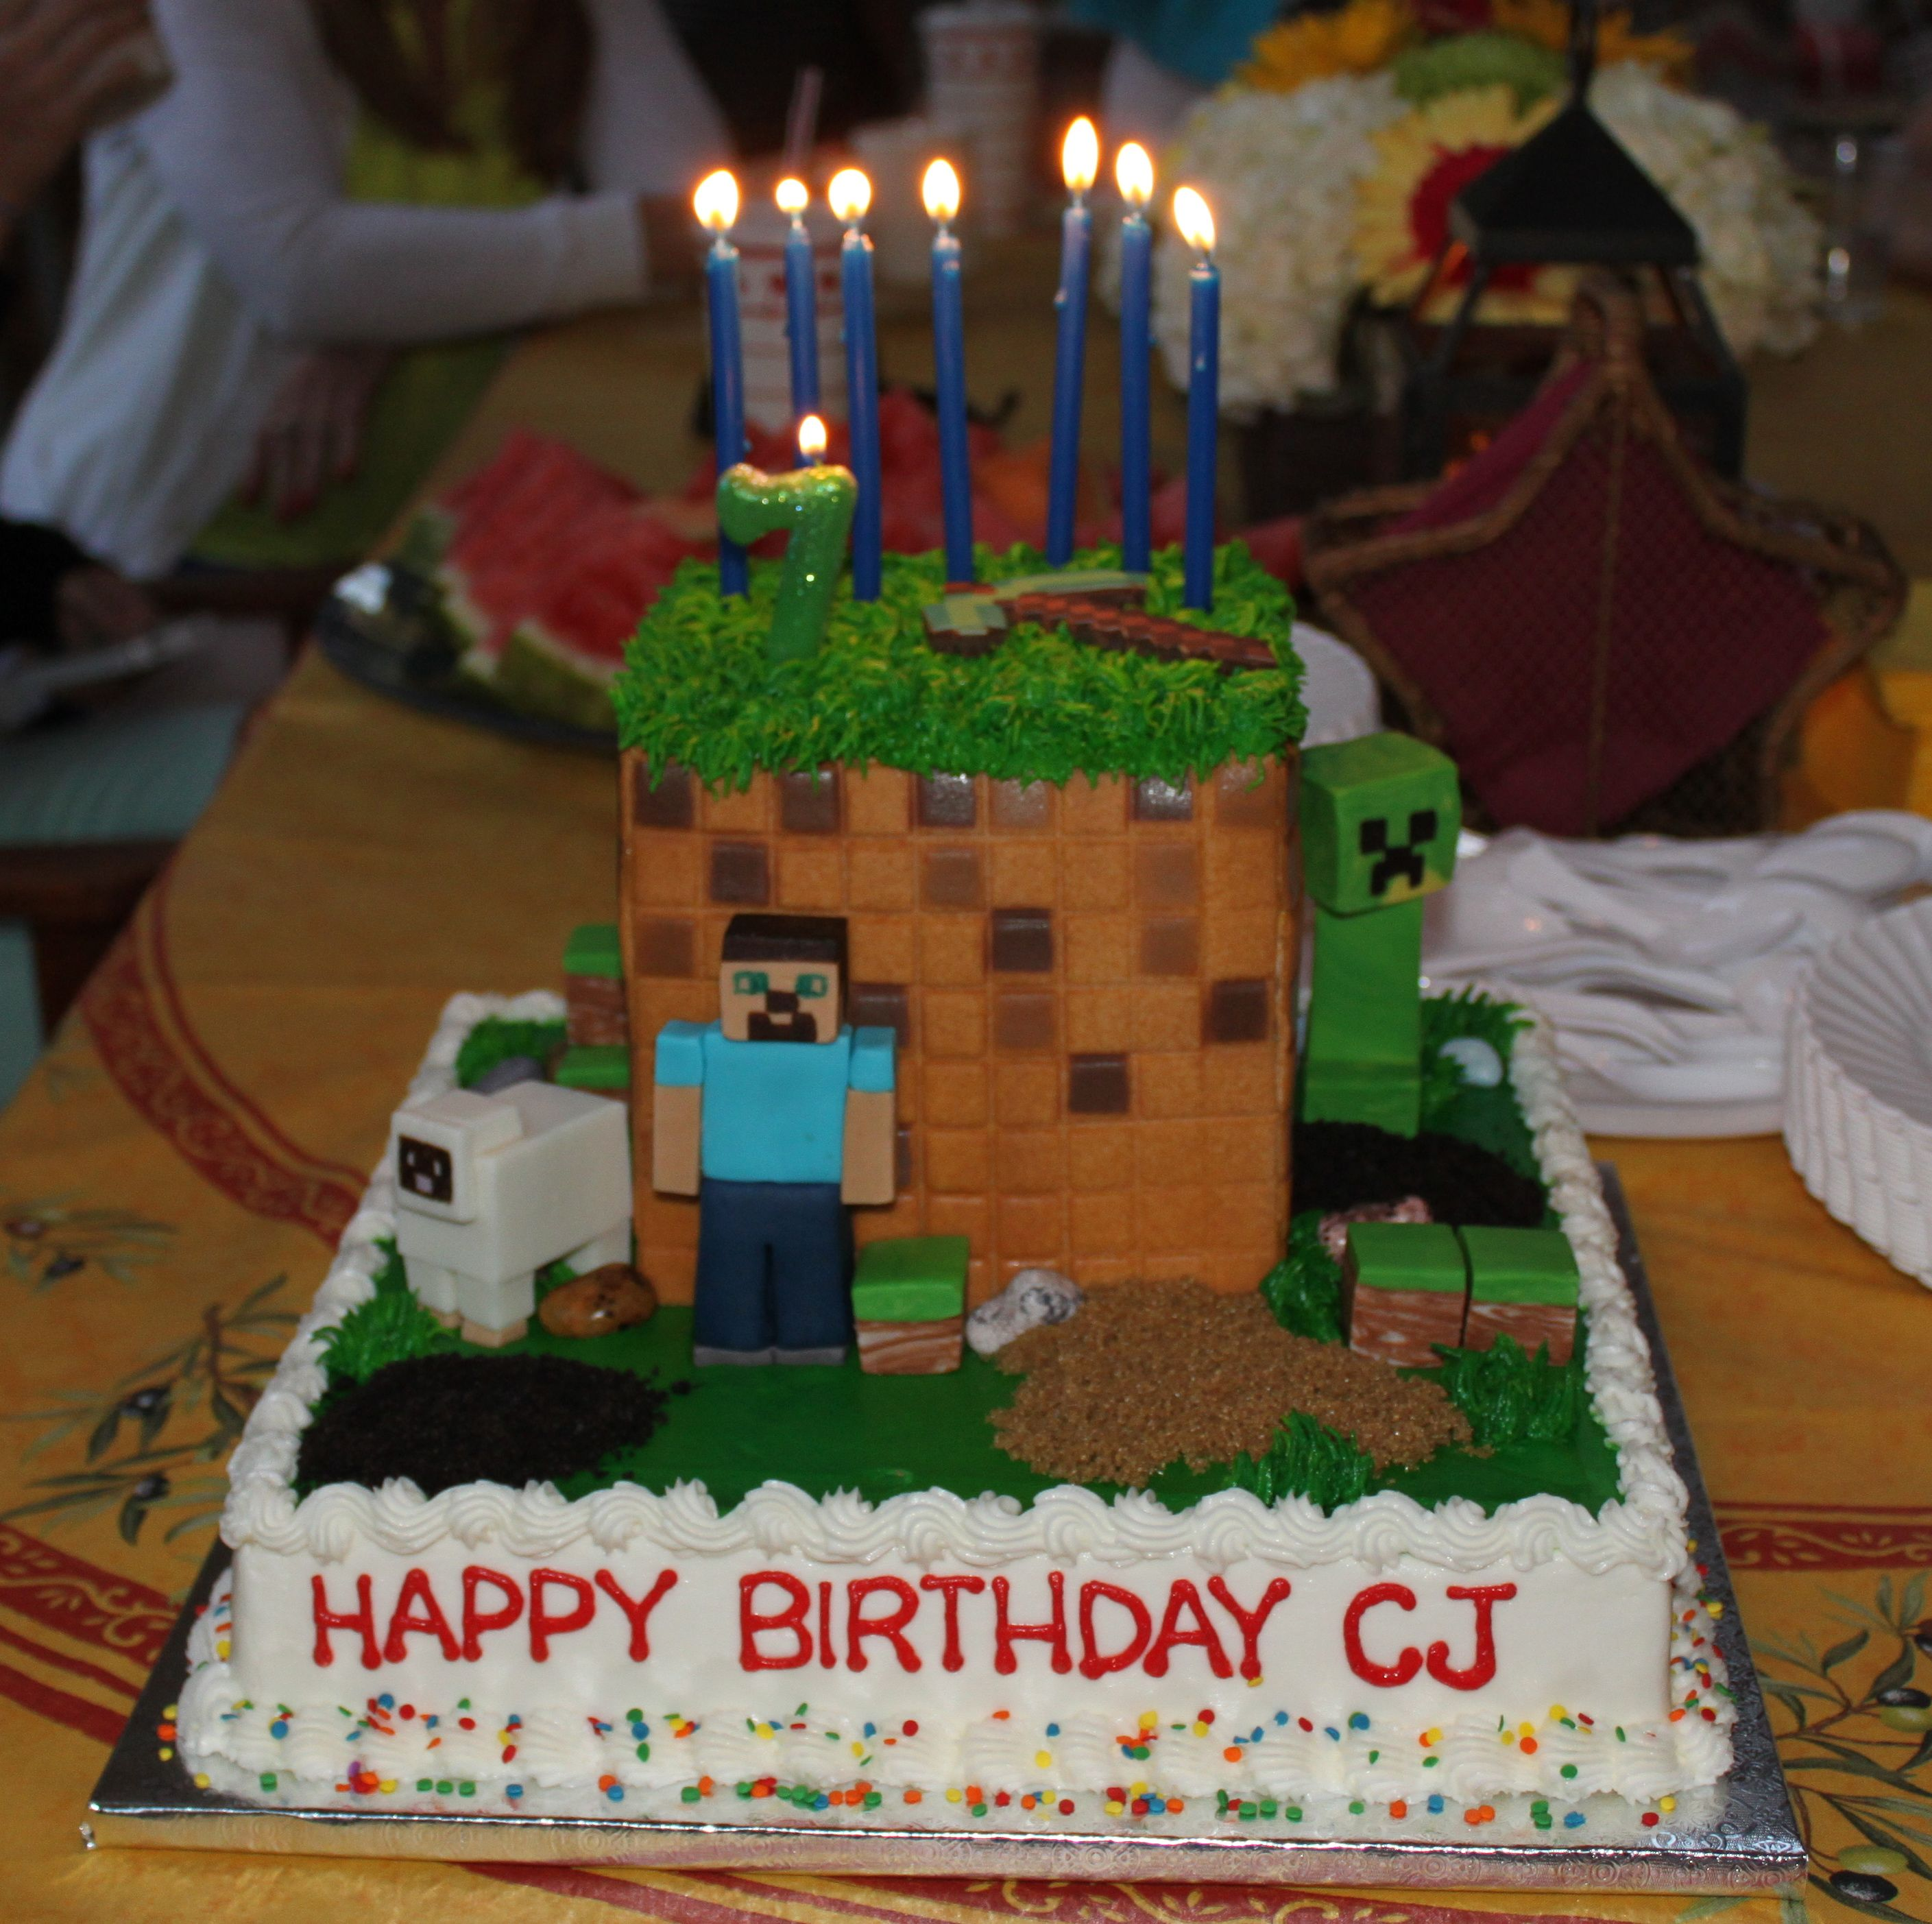 17 Of The Coolest Minecraft Birthday Cakes Ever Created Spaceships And Laser Beams